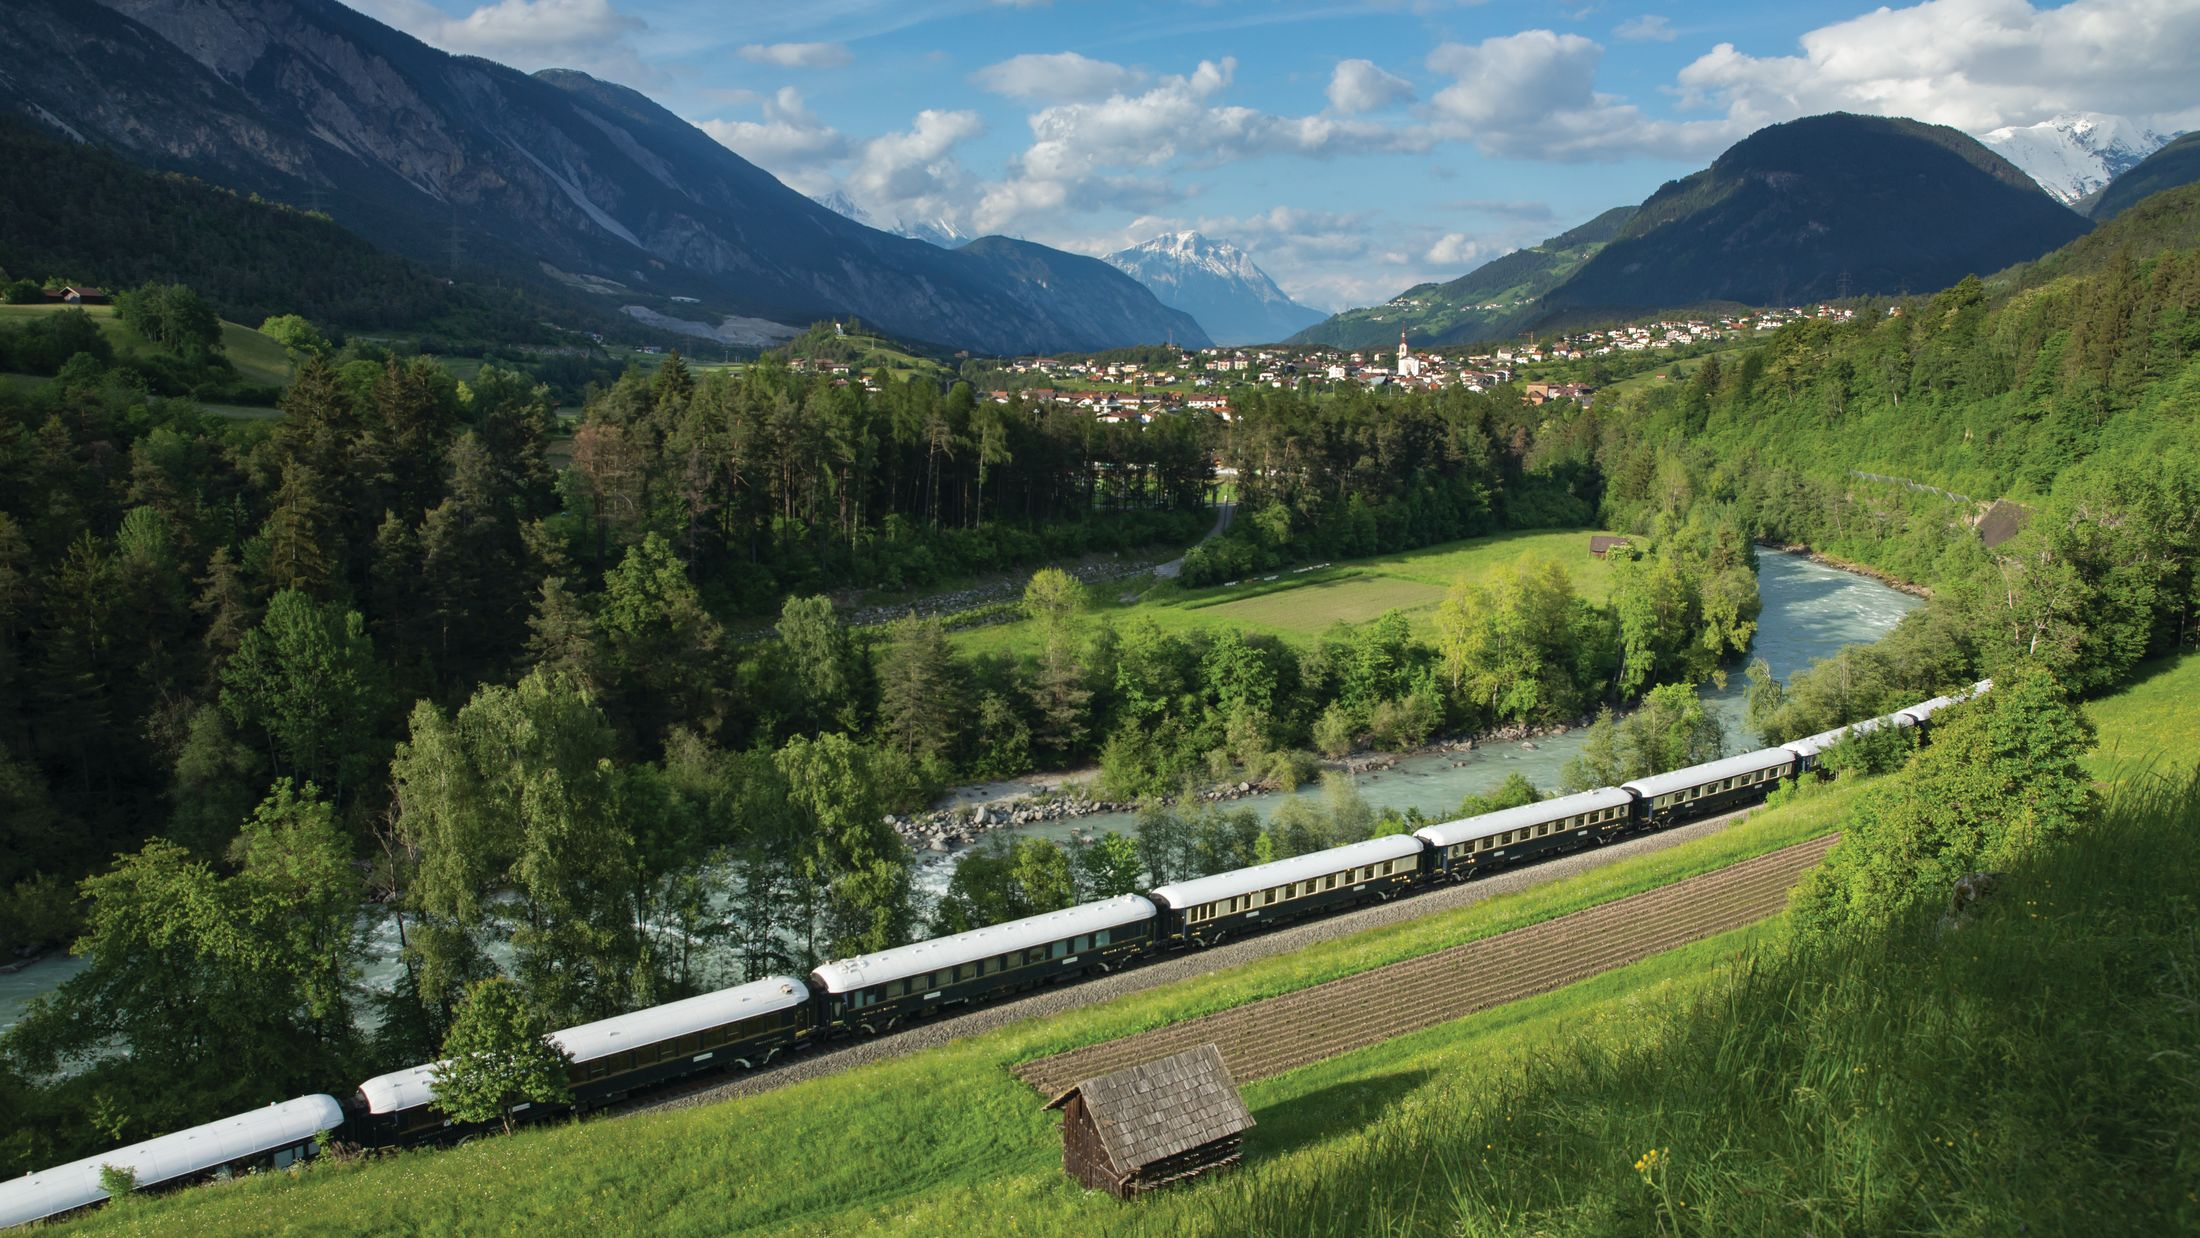 the Venice Simplon Orient Express passing through near Roppen, Austria